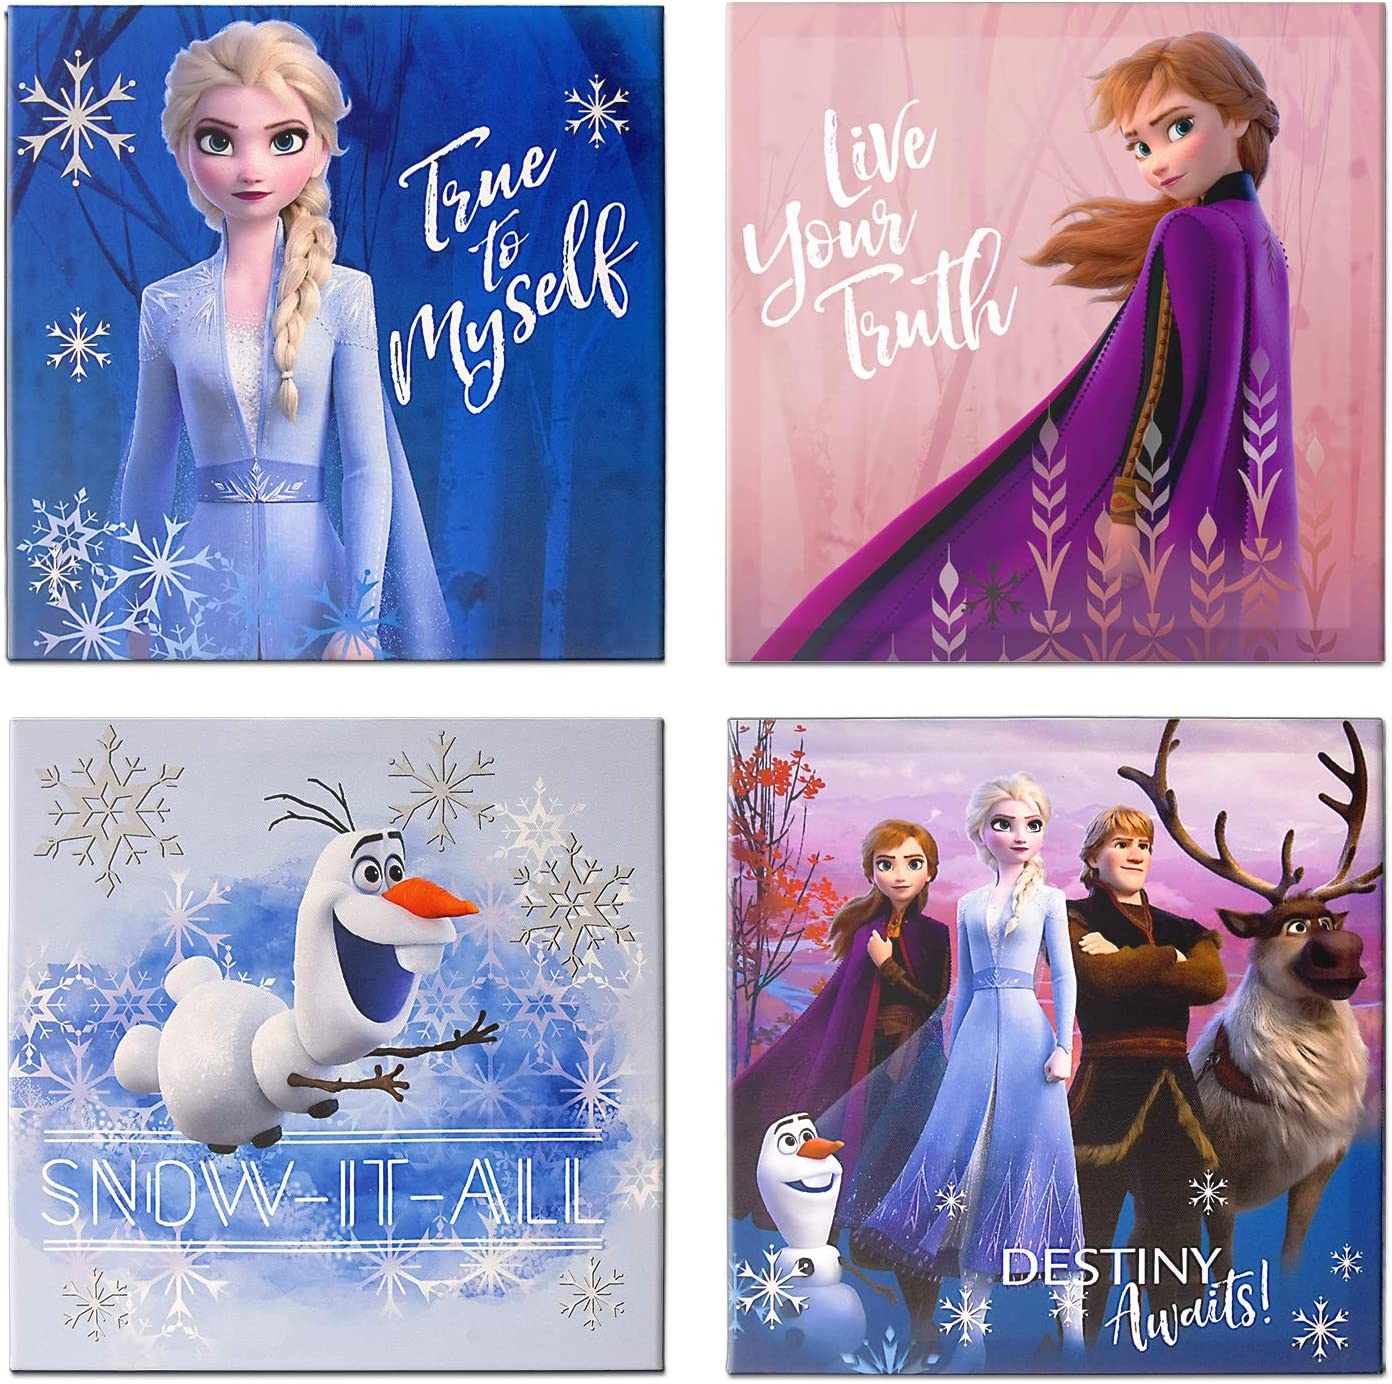 Disney Frozen 2 4 Pack Canvas LED Wall Art, Eachpiece Measures 11.4